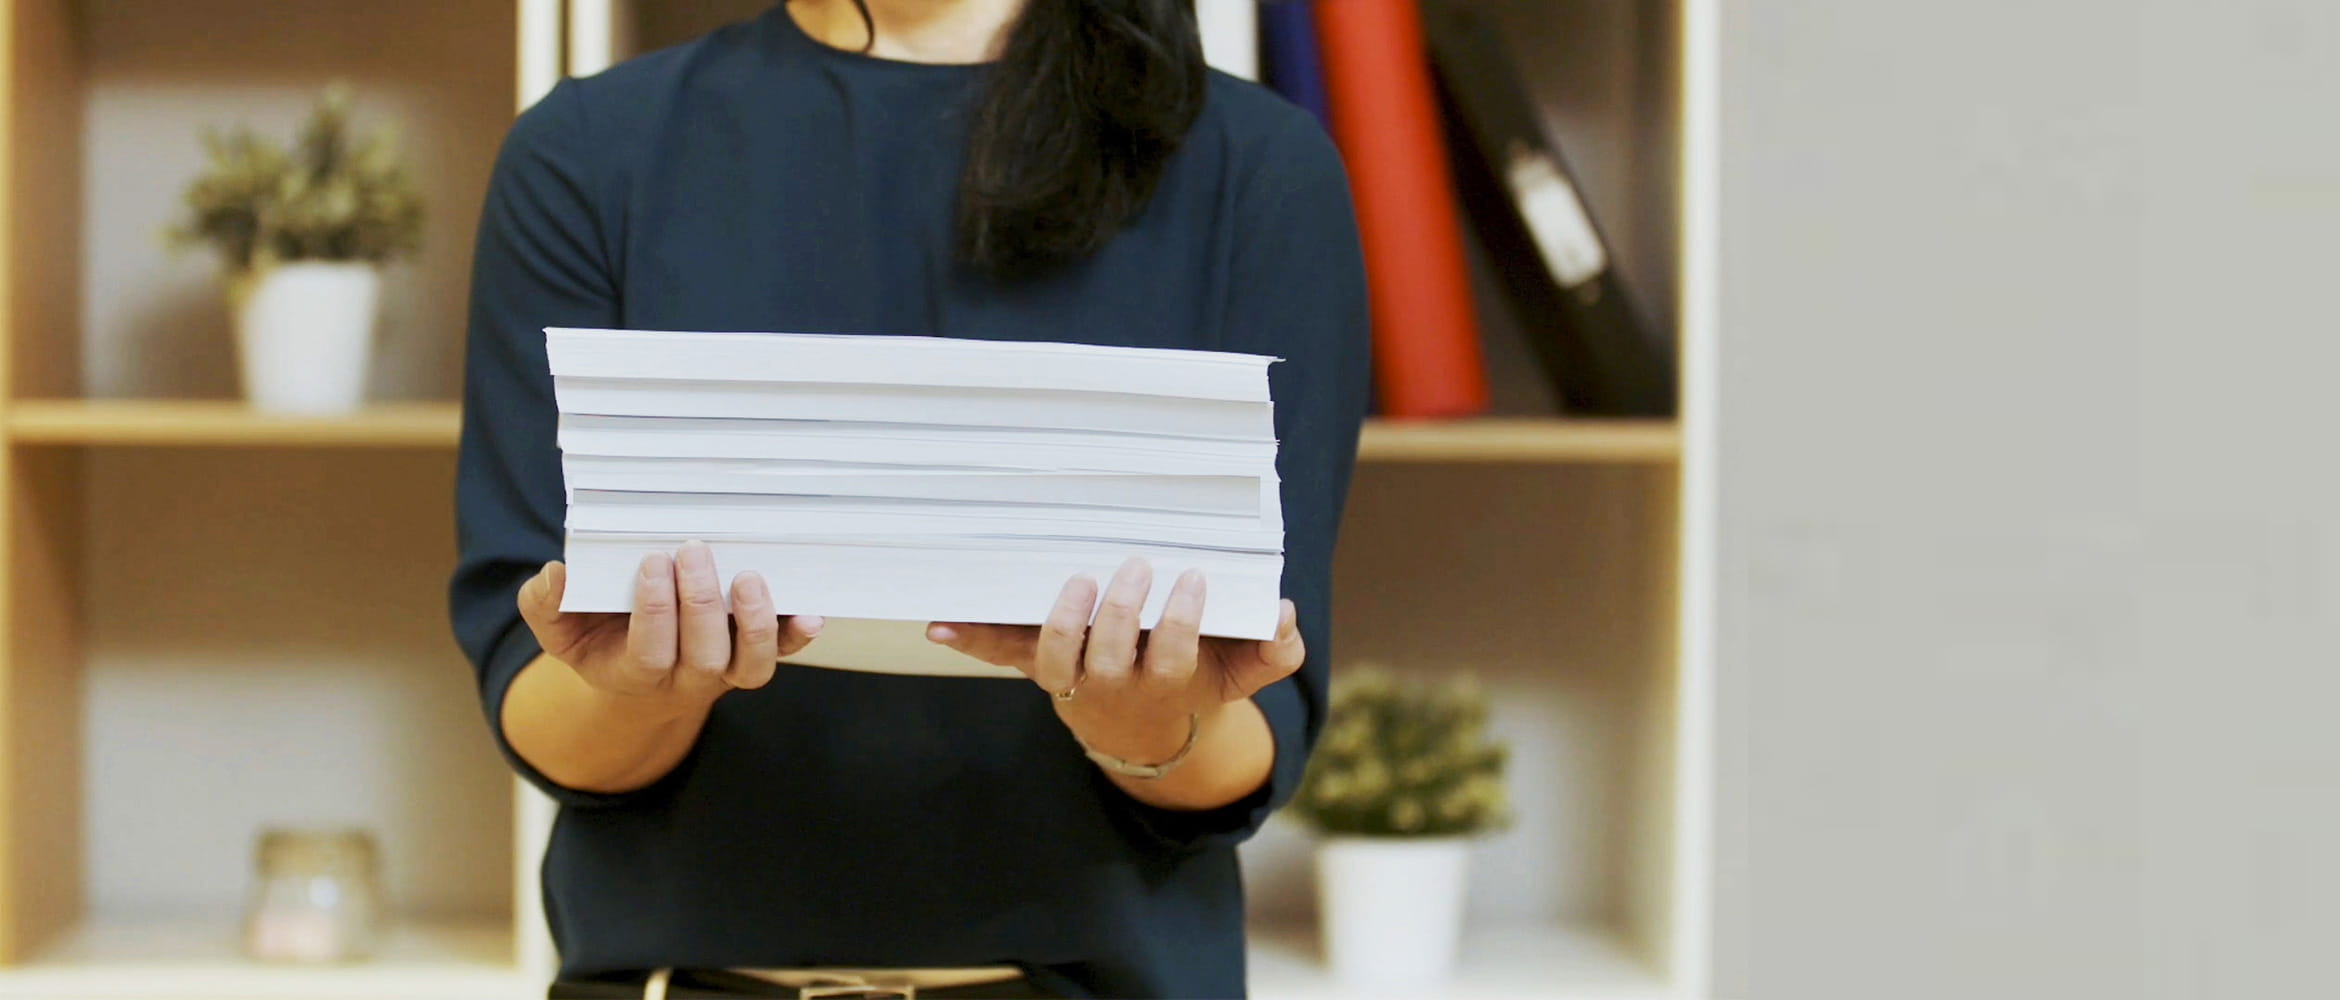 Woman holding pile of paper